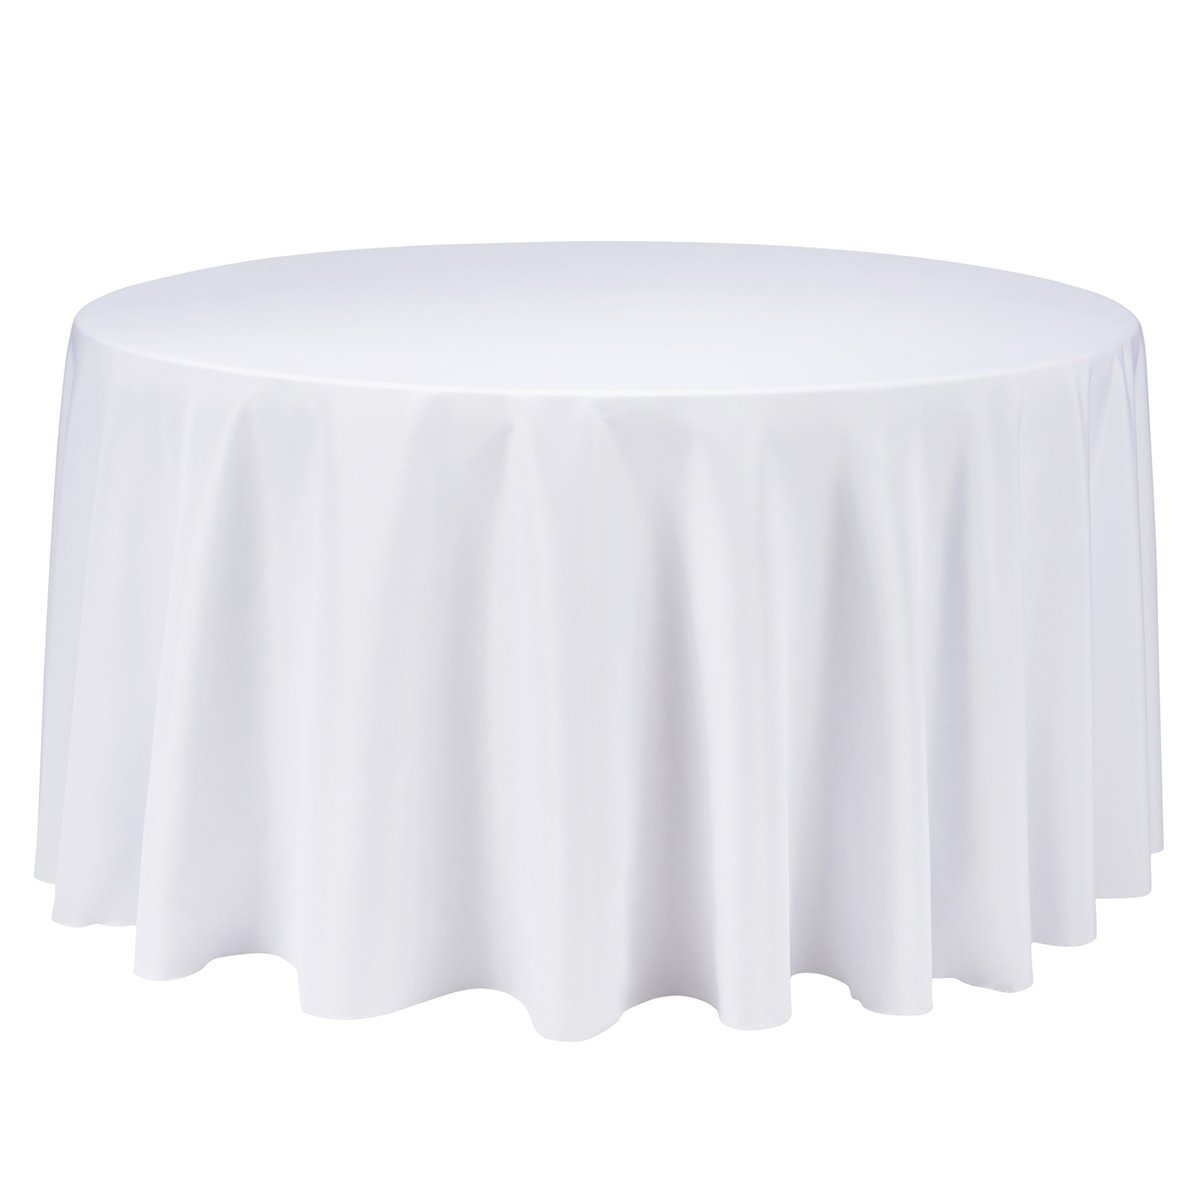 Superieur Round Table Covers White